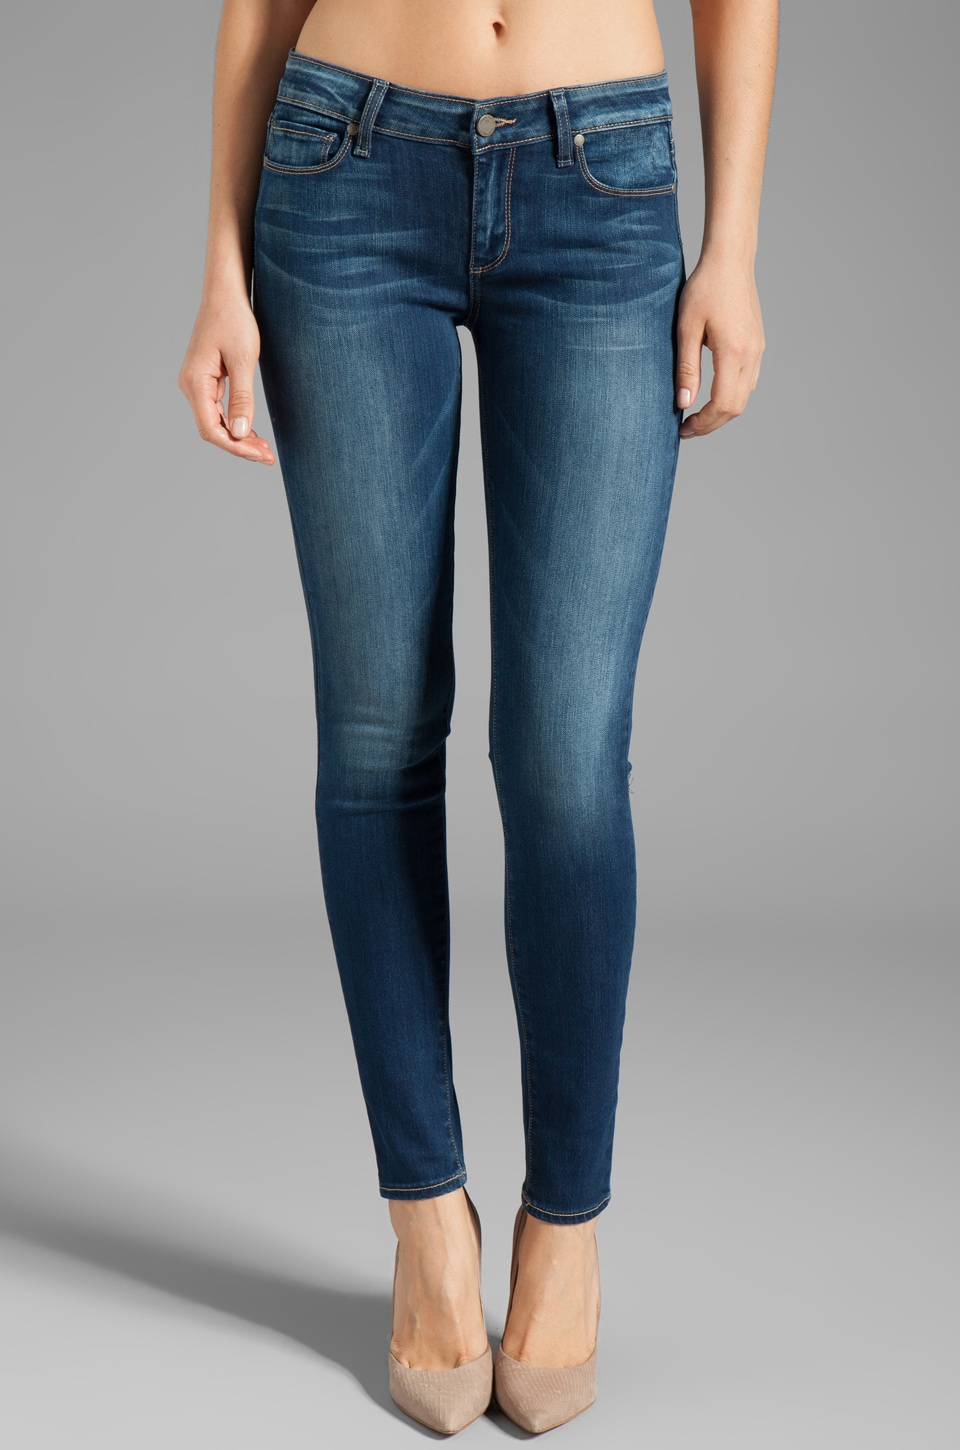 Paige Denim Verdugo Ultra Skinny in Lightyear